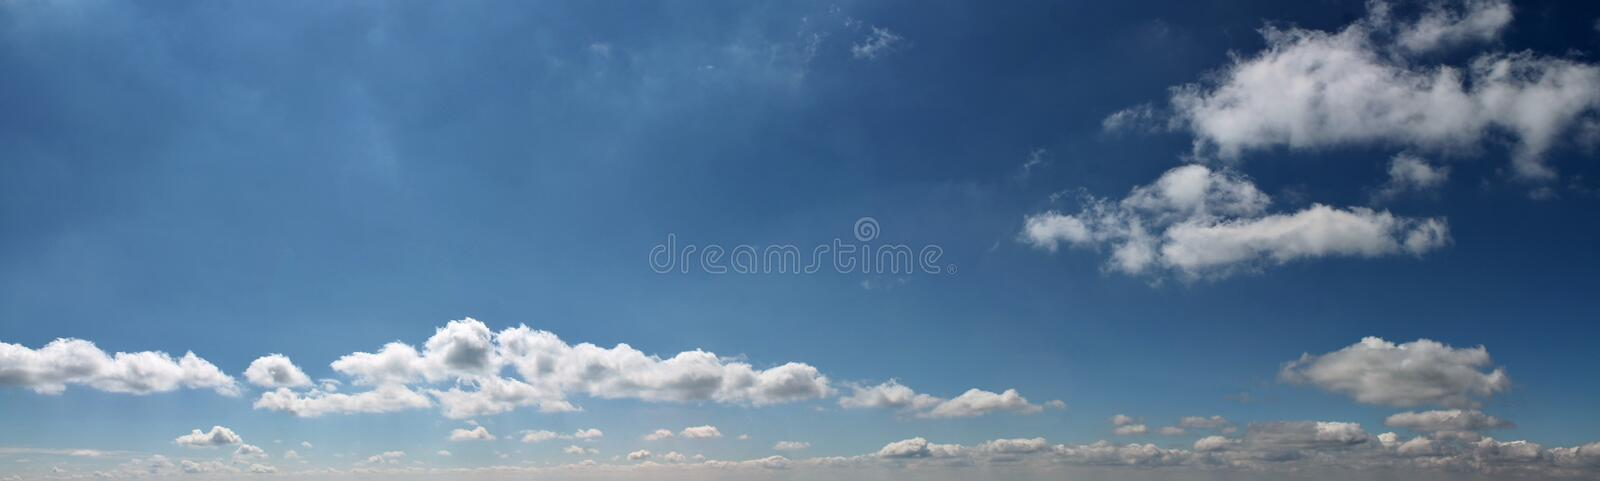 Beautiful clouds and blue sky panorama in high resolution royalty free stock photography